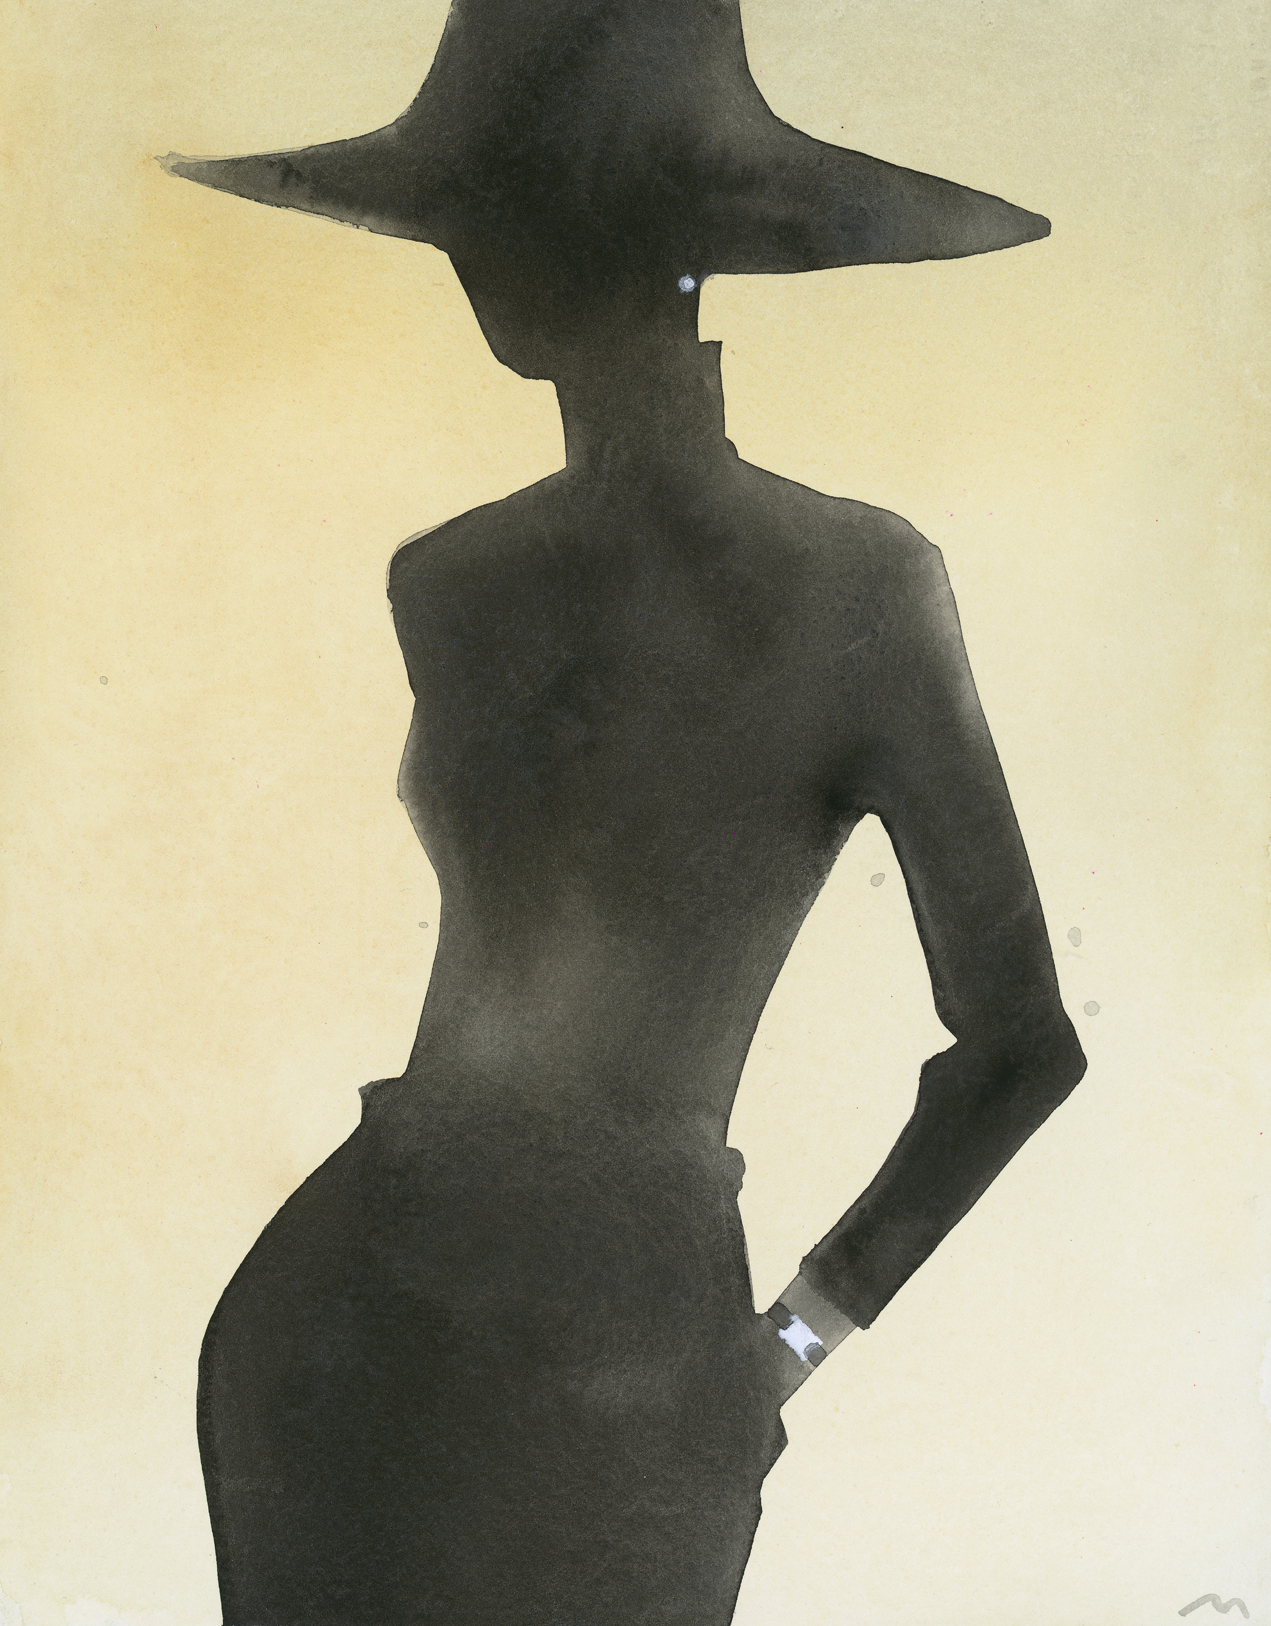 Mats Gustafson   Silhouette (With hat, watch)  For Tiffany & Co 2005 Watercolor 36 x 28 cm